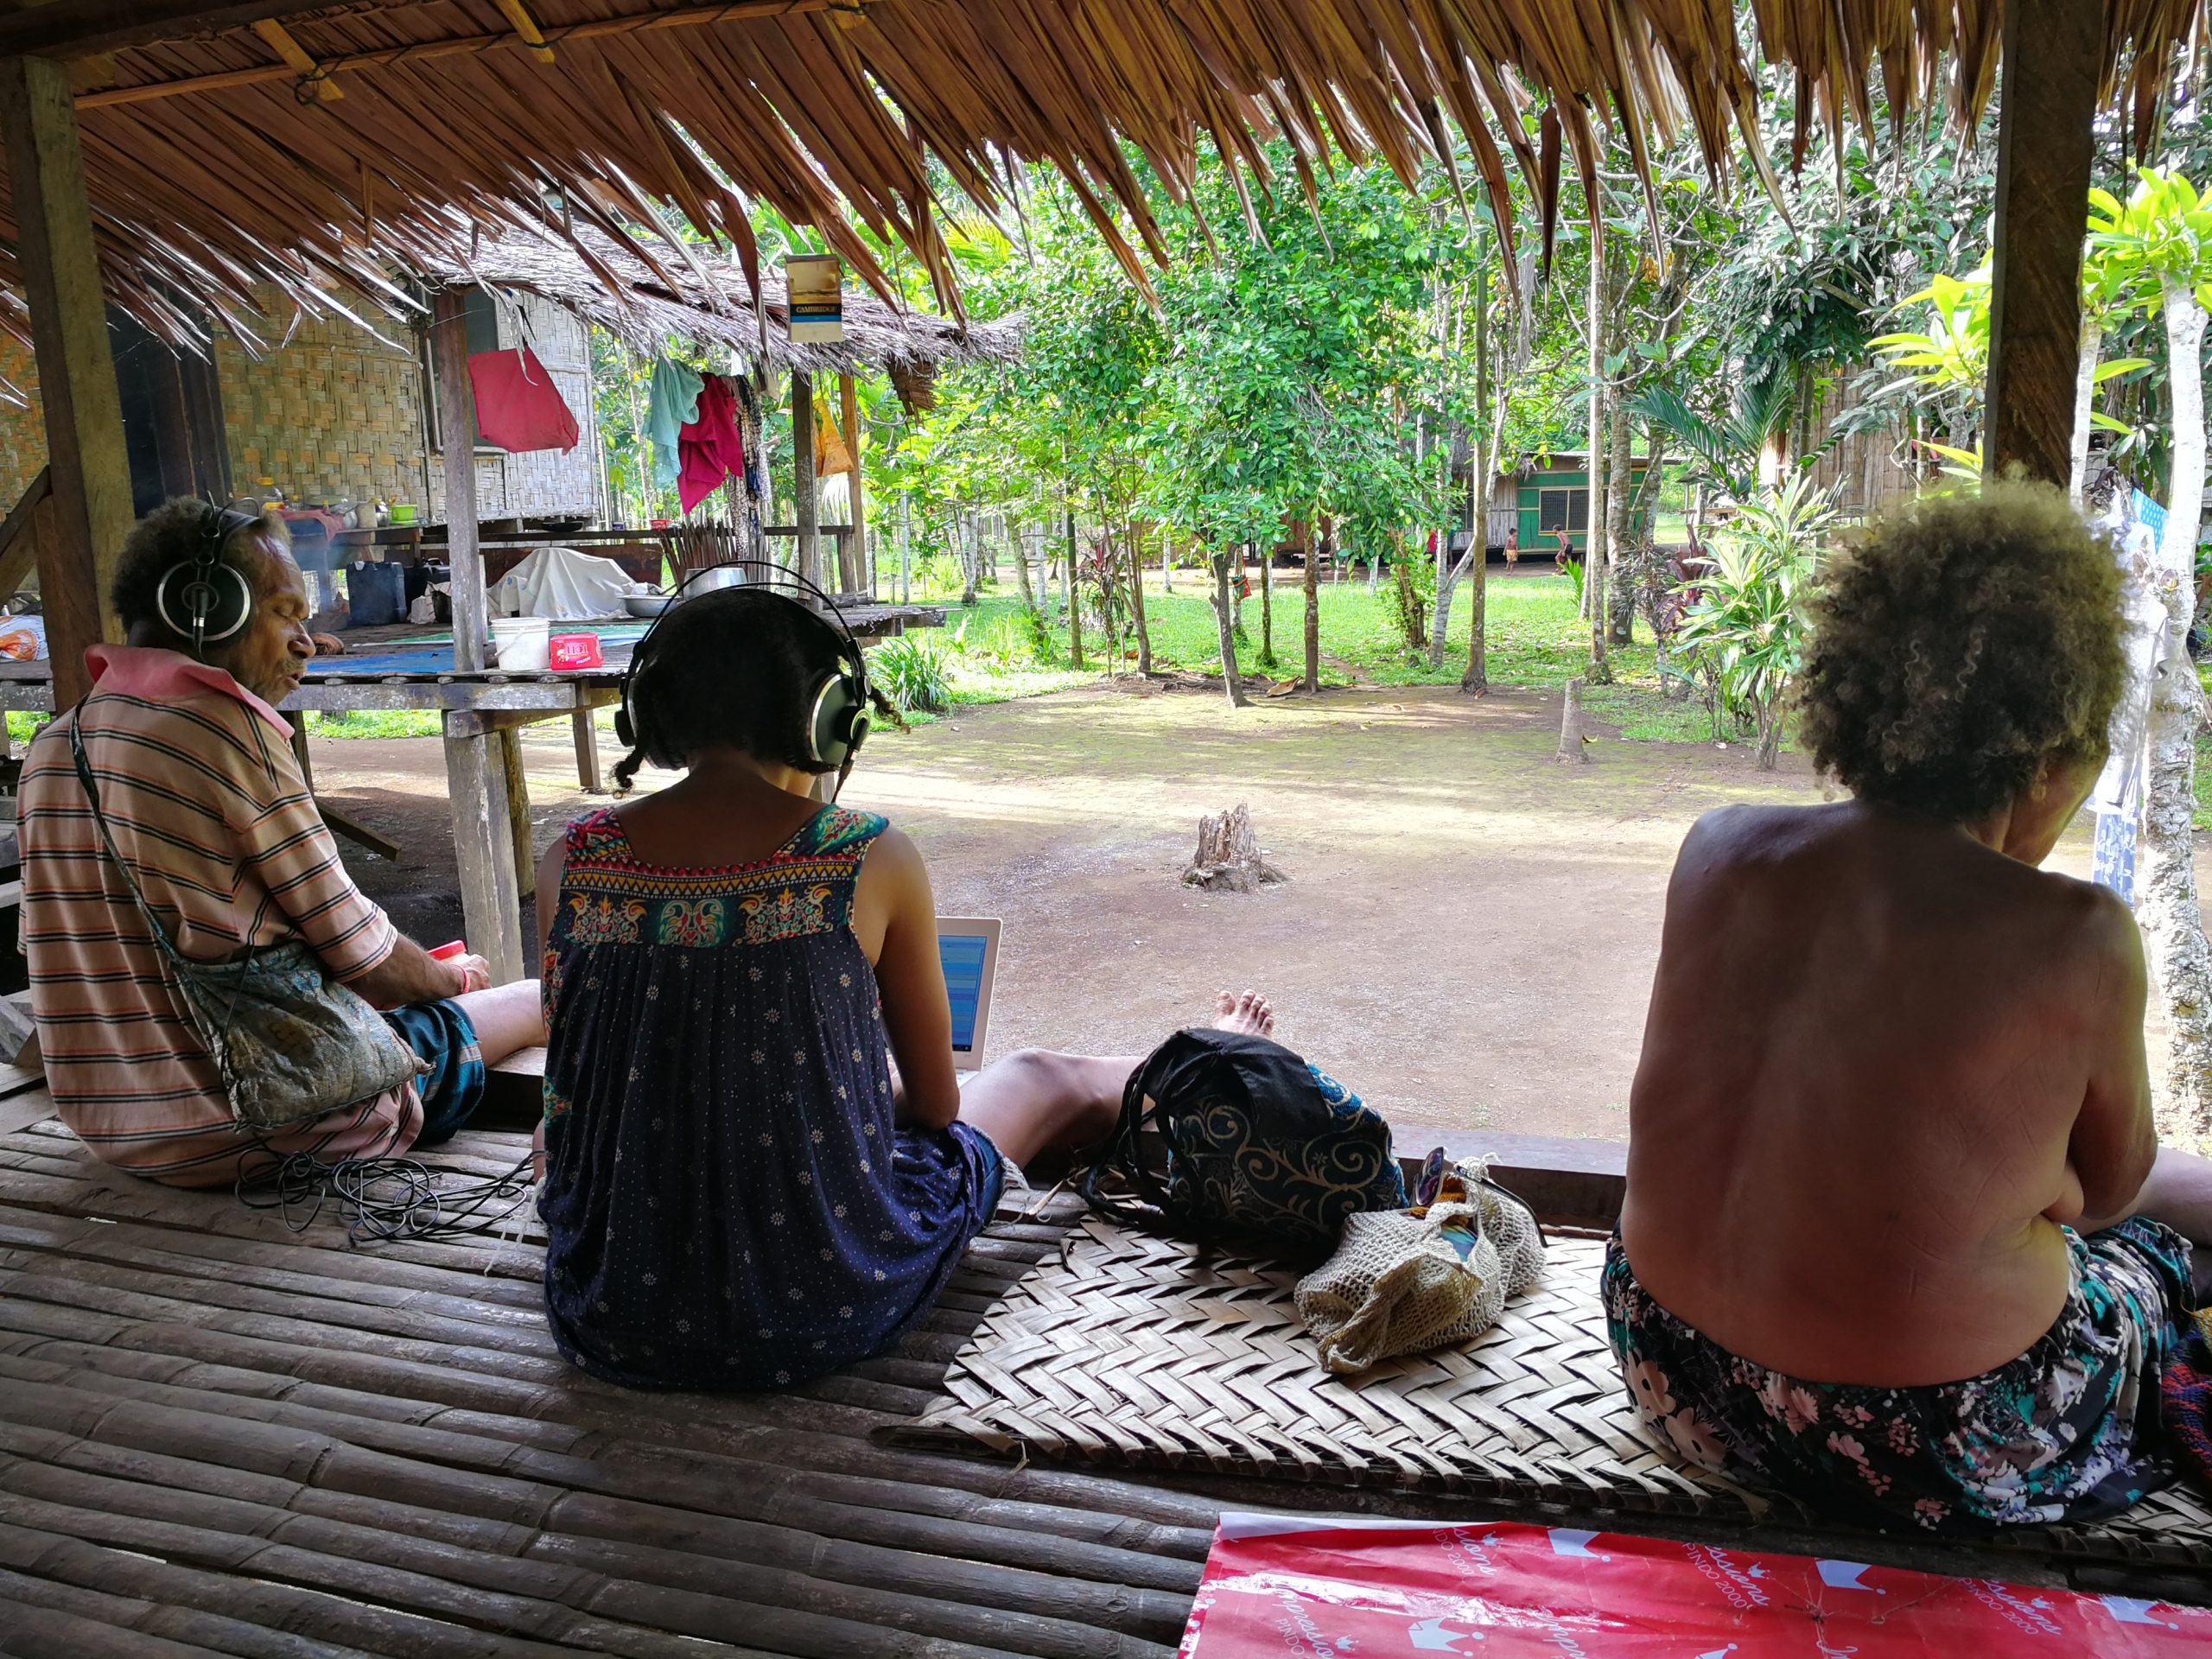 Three people sitting in a Papuan stilt house transcribing text on a laptop.